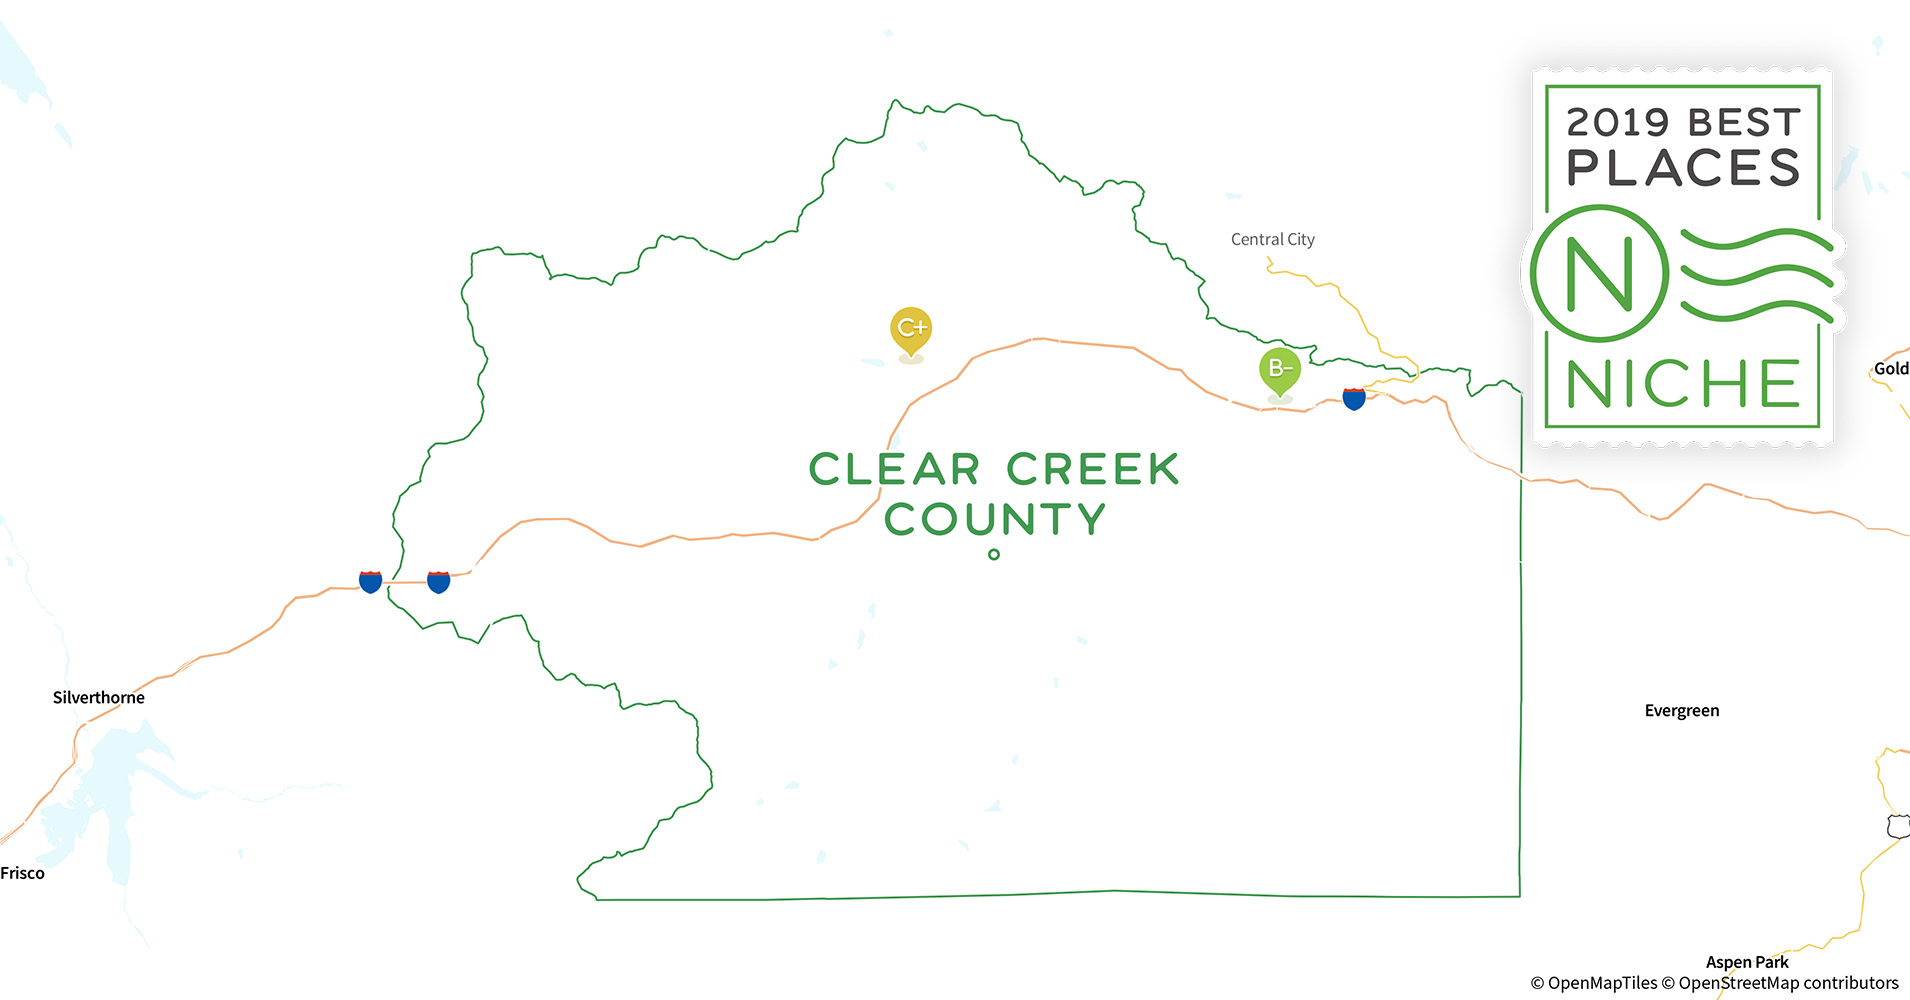 2019 Best Places to Live in Clear Creek County, CO - Niche Map Of Clear Creek County Co on map of lone tree co, map of grand lake co, map of greenwood village co, map of parker co, map of las animas co, map of aspen co, map of idaho springs co, map of rocky mountain national park co, map of glenwood springs co, map of winter park co, map of brighton co, map of littleton co, map of northglenn co, map of wheat ridge co, map of canon city co, map of steamboat springs co, map of central city co, map of silver plume co, map of front range co, map of golden co,